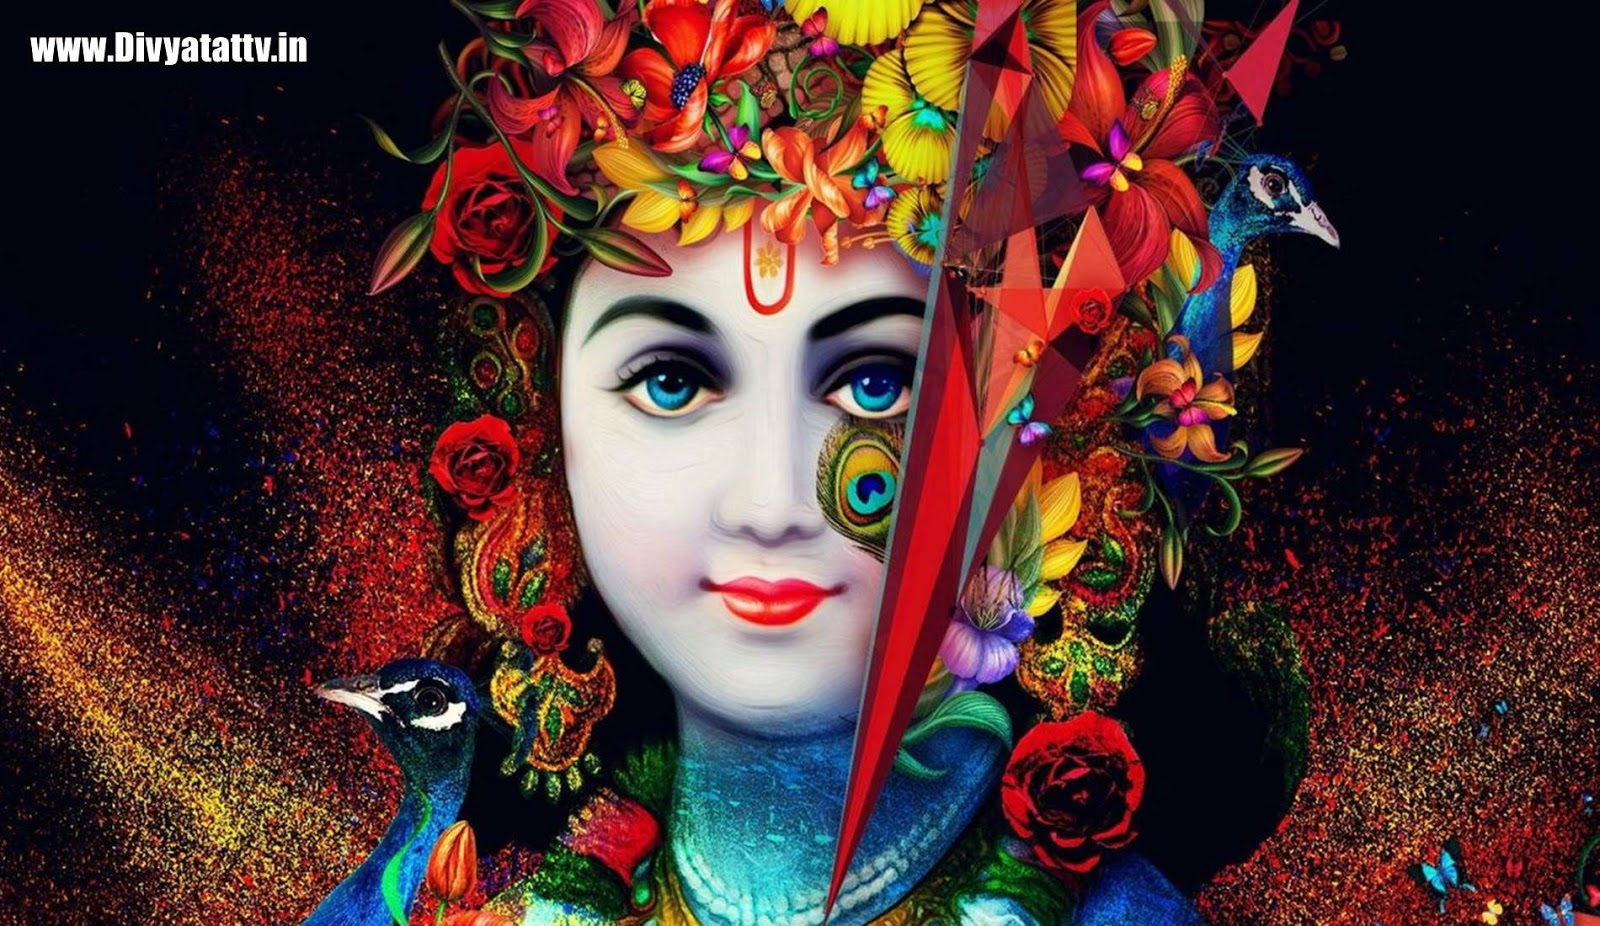 Best Wallpaper Lord Beautiful - Lord-Krishna-wide-fabulous-wallpapers-pictures-images-god-hindu-radha-divyatattva  Gallery_77641.jpg